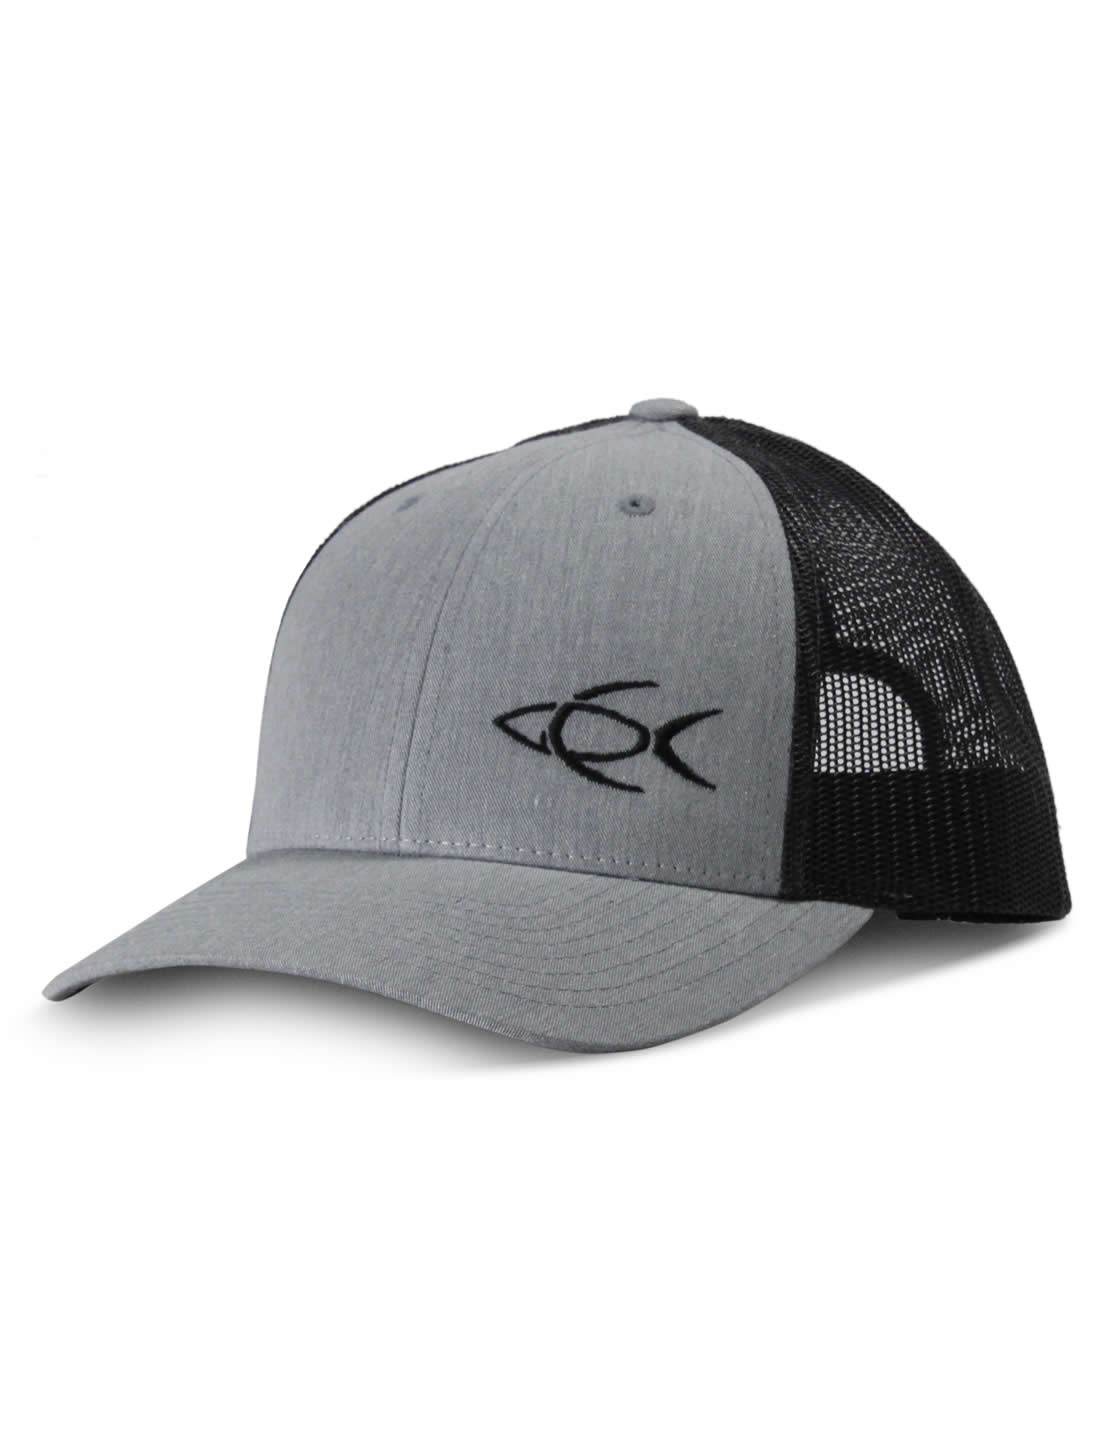 320d135f769 CPF Embroidered Fish Charcoal and Black Mesh Back Fishing Hat - CPF Gear